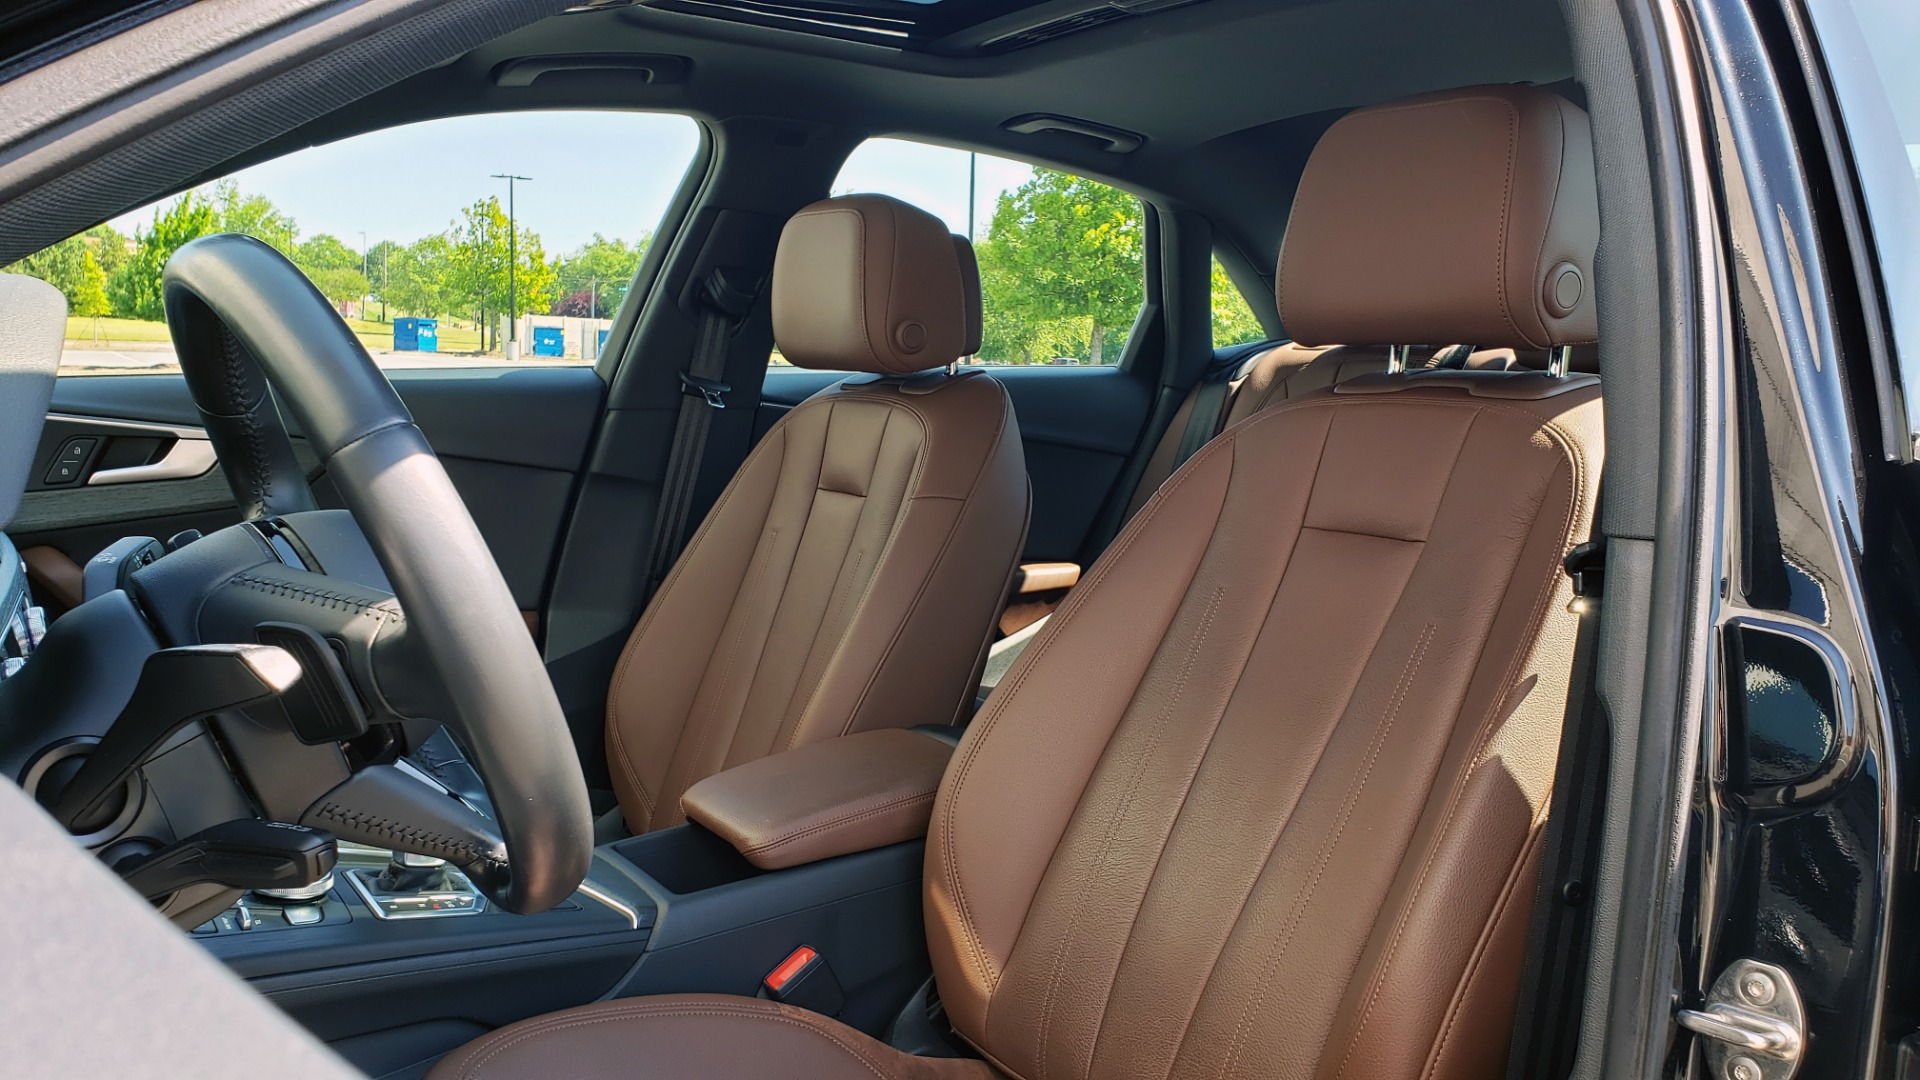 Used 2018 Audi A4 PREMIUM PLUS 2.0T / NAV / SUNROOF / B&O SND / CLD WTHR / REARVIEW for sale $30,695 at Formula Imports in Charlotte NC 28227 34